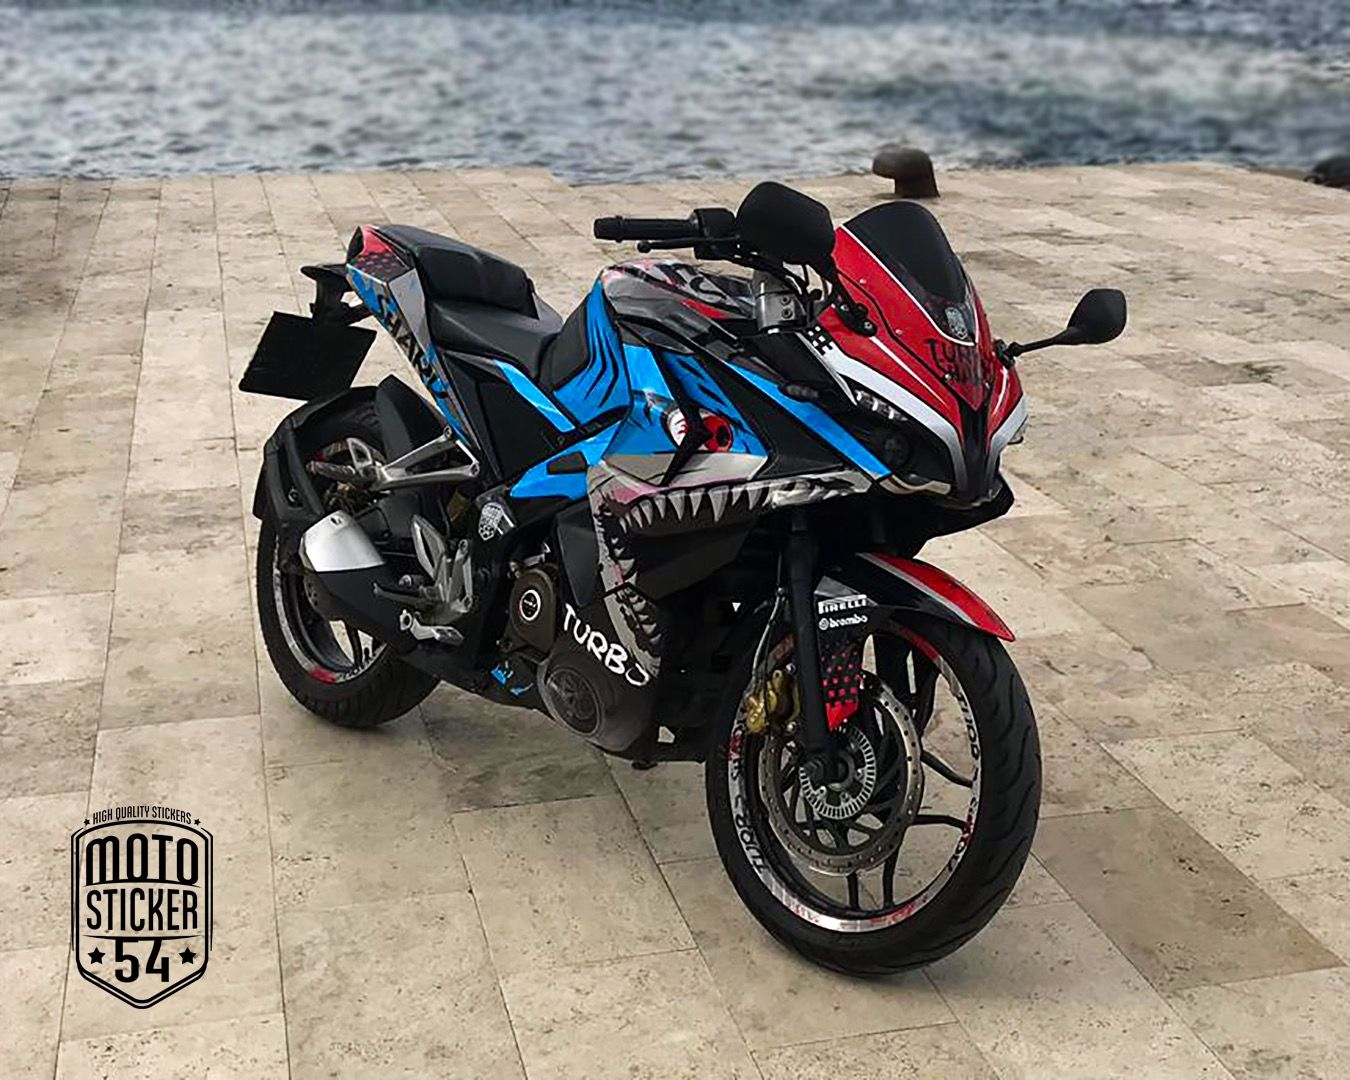 Bajaj pulsar rs200 turbo shark sticker kit